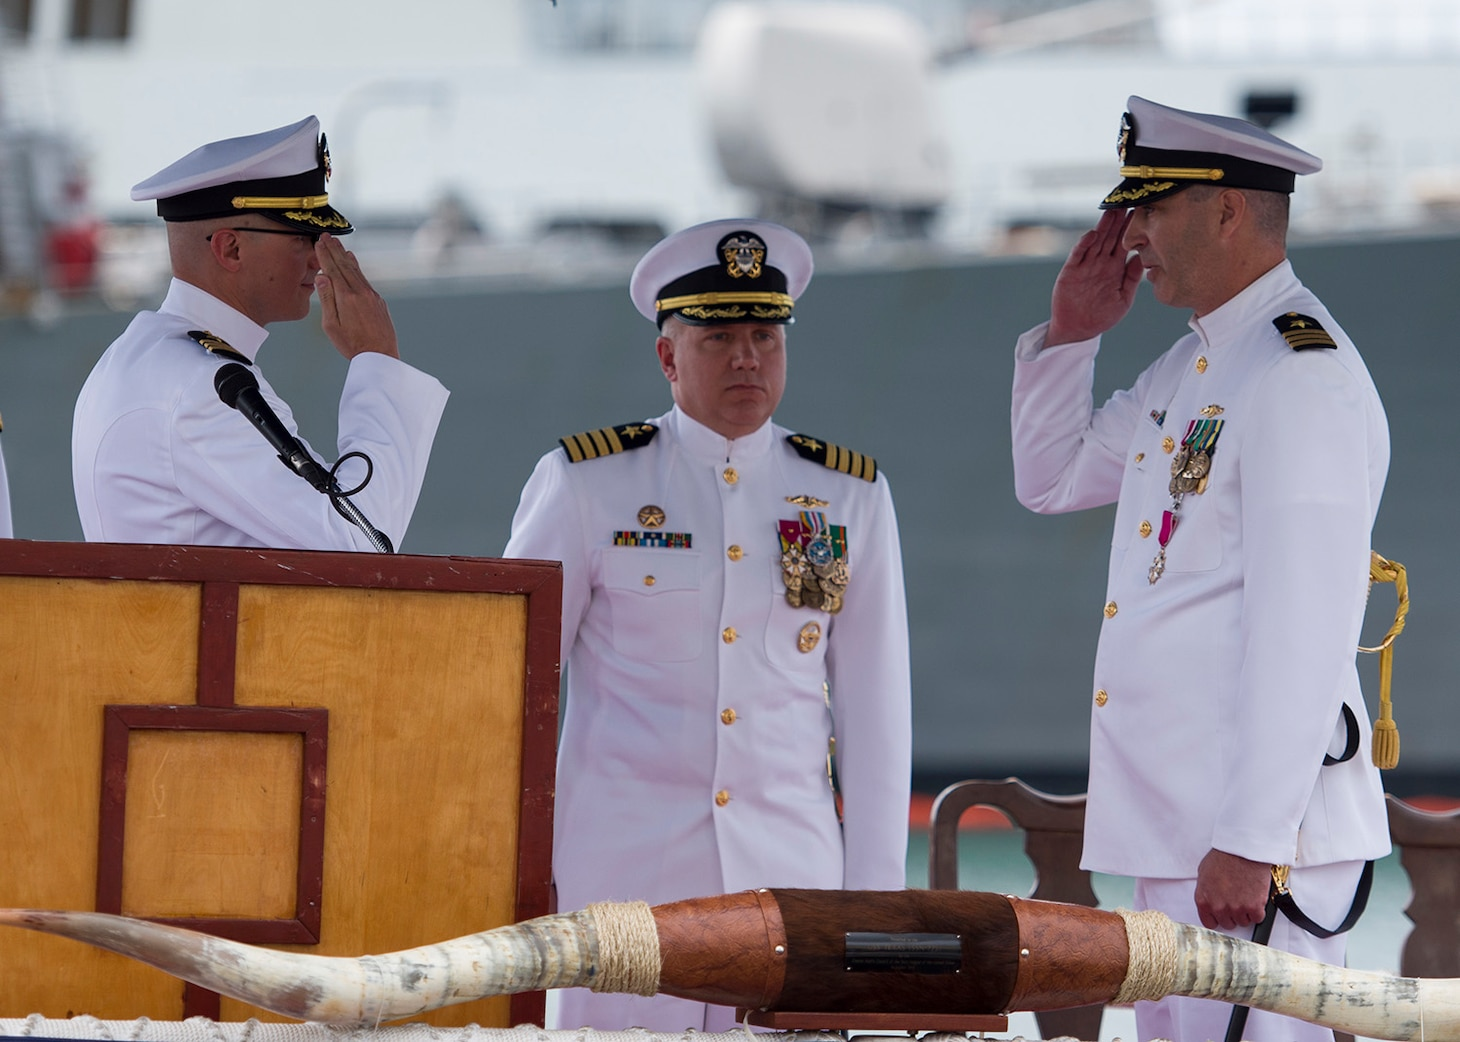 PEARL HARBOR, Hawaii (Feb. 24, 2017) Cmdr. Mike R. Dolbec, left, relieves Cmdr. Todd J. Nethercott, right, as the commanding officer of Virginia-class fast-attack submarine USS Texas (SSN 775), during a change of command ceremony on the historic submarine piers in Joint Base Pearl Harbor-Hickam. (U.S. Navy photo by Mass Communication Specialist 2nd Class Michael Lee/Released)